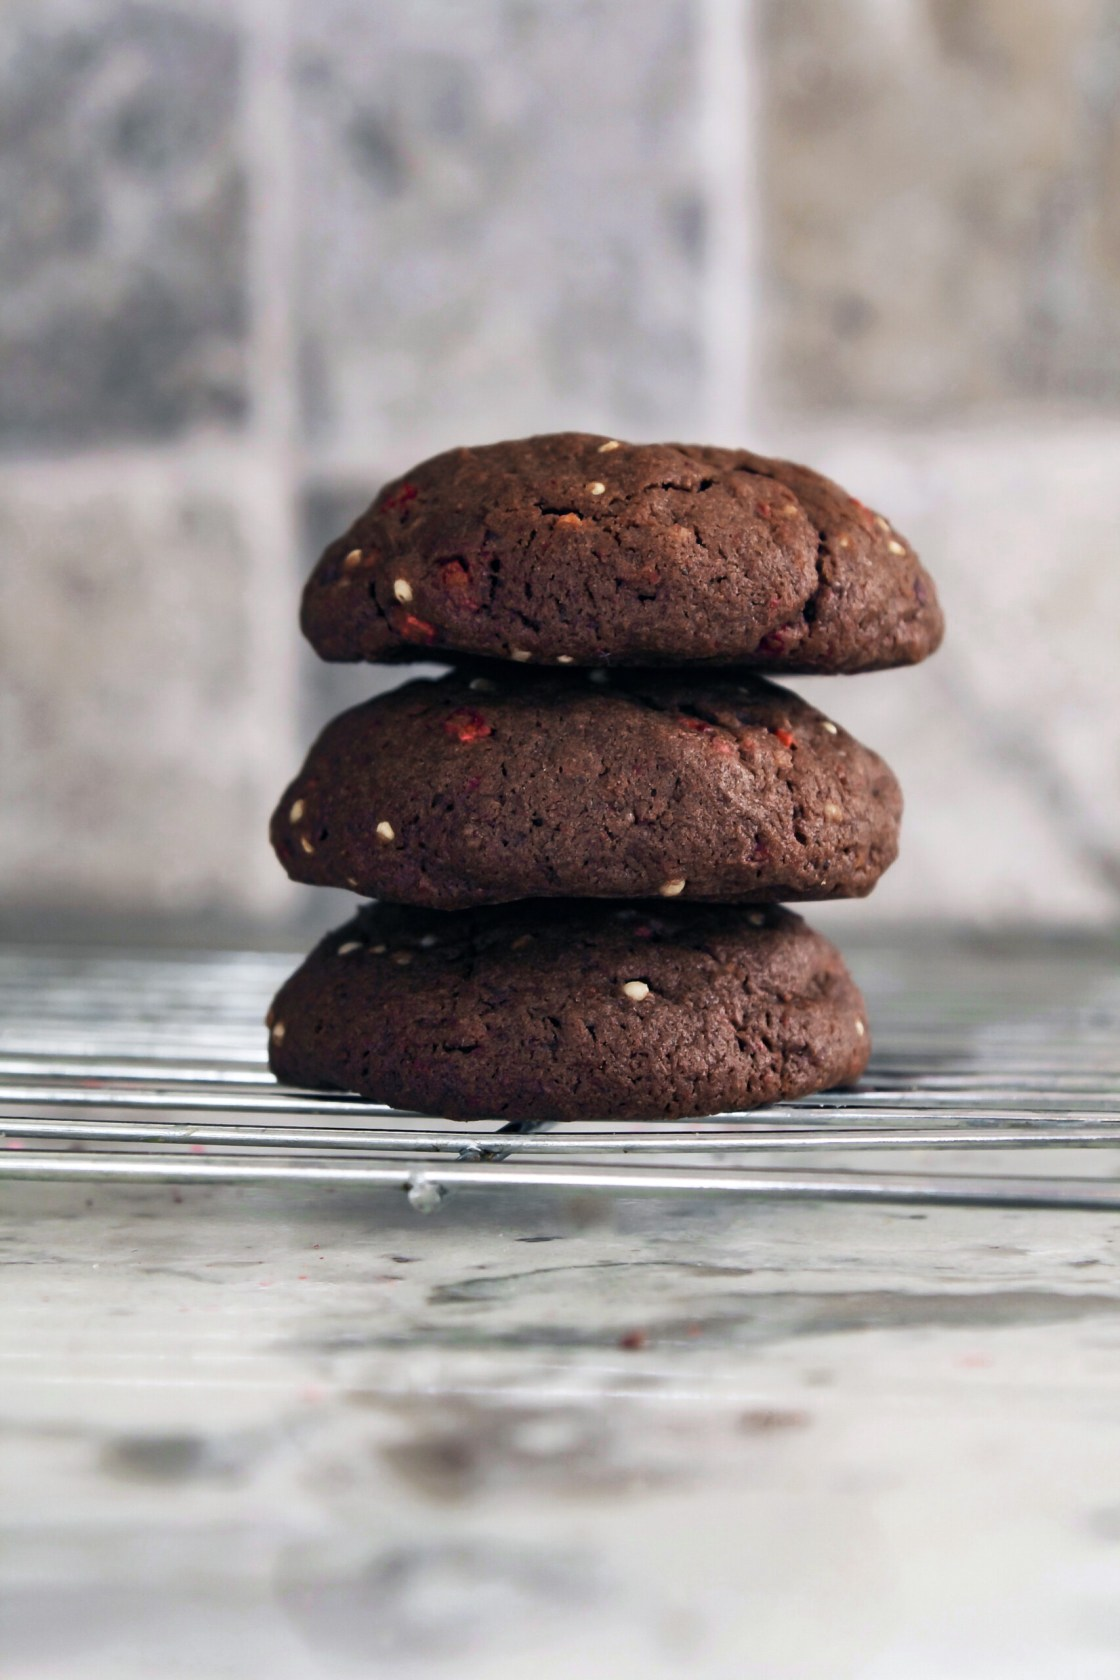 Photograph of Mexican Chocolate Cookies stacked on top of eachother.